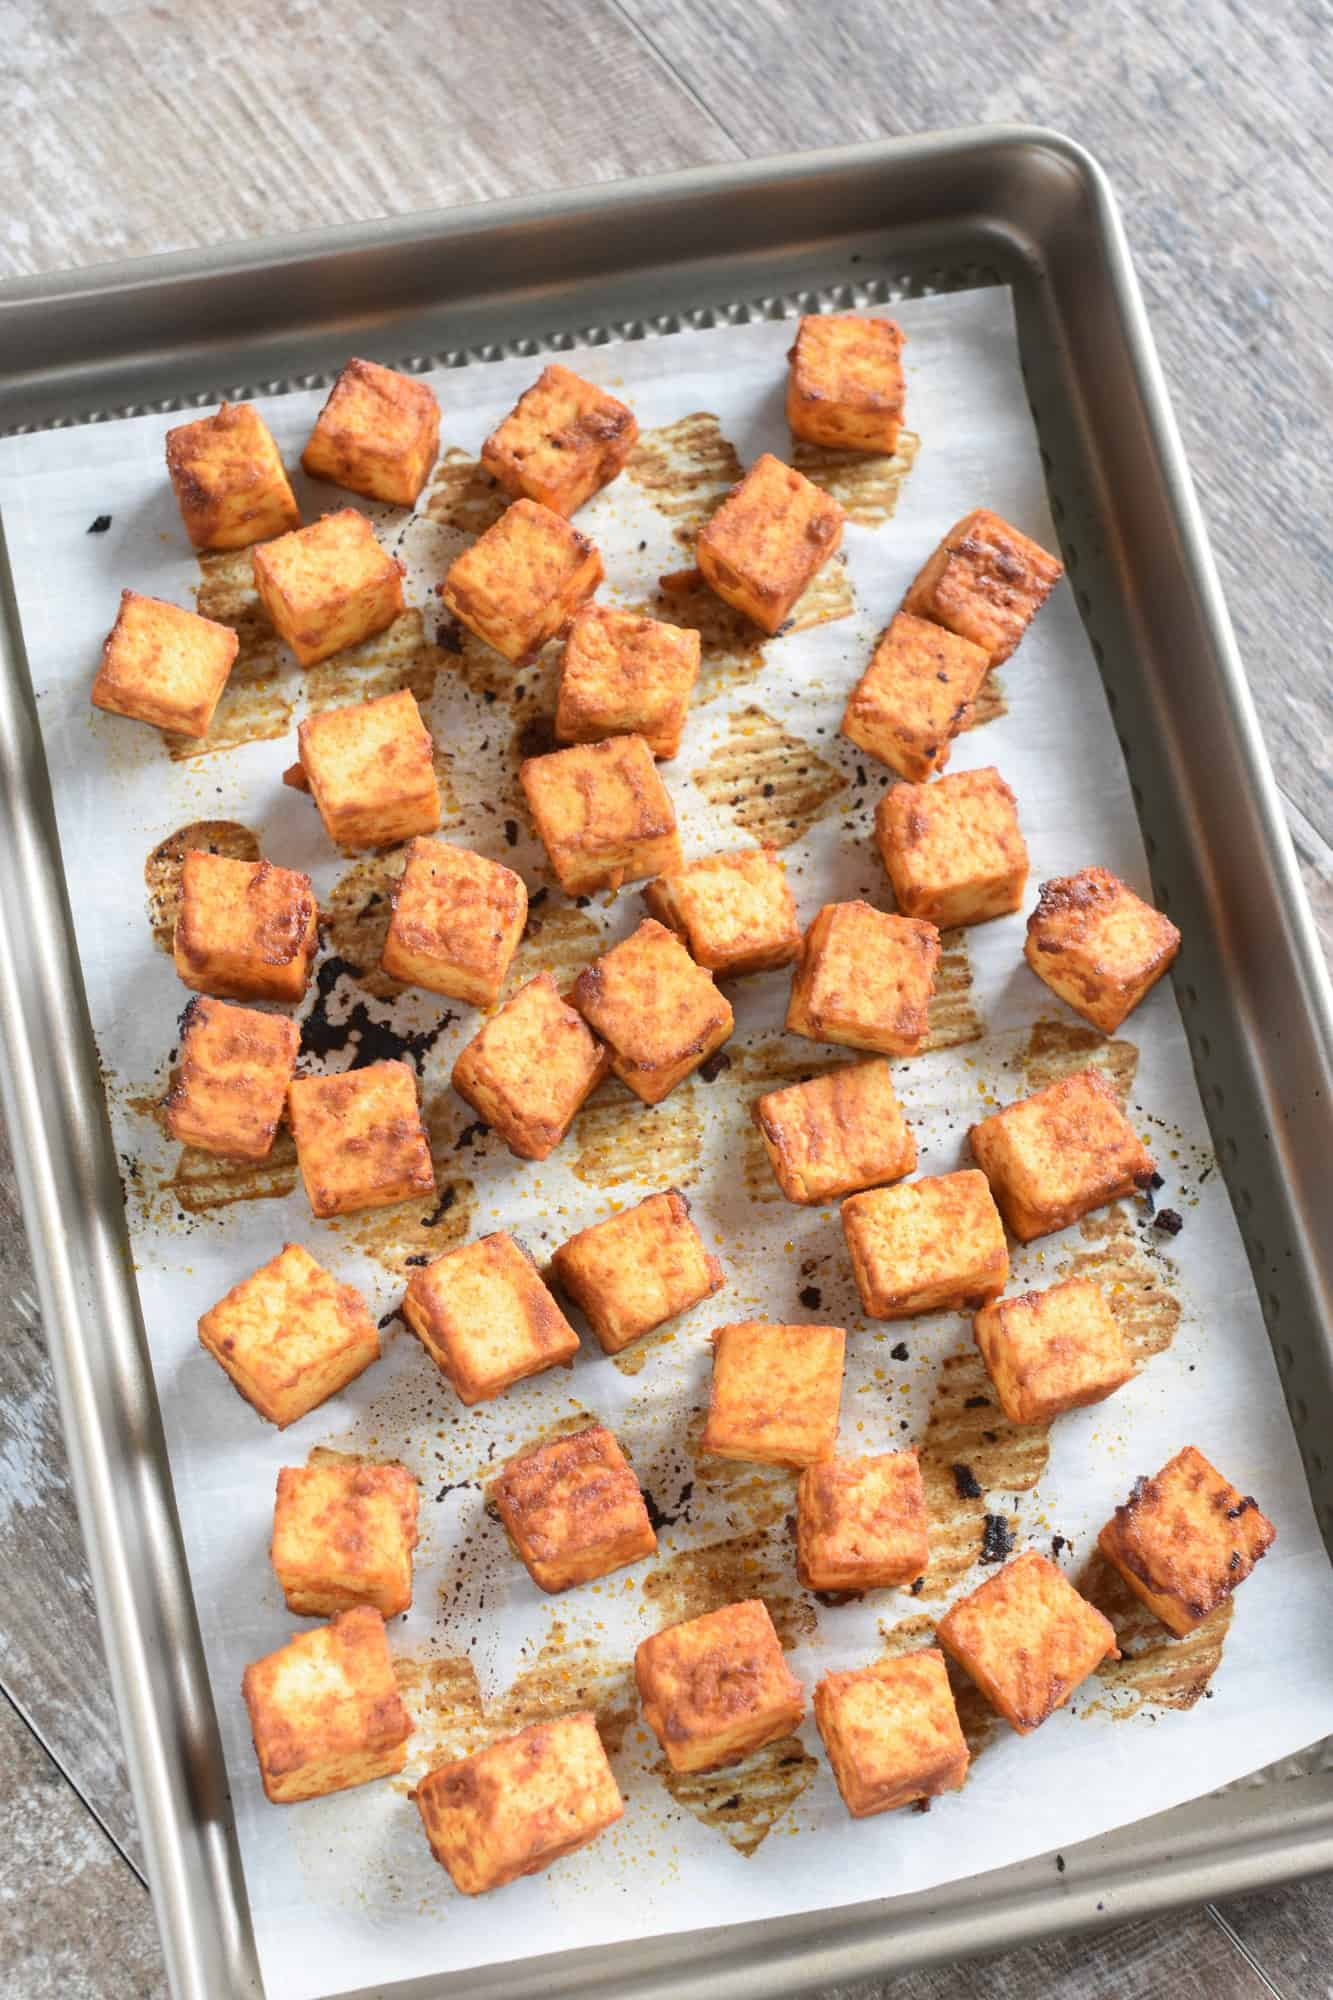 Tofu on baking sheet after being cooked